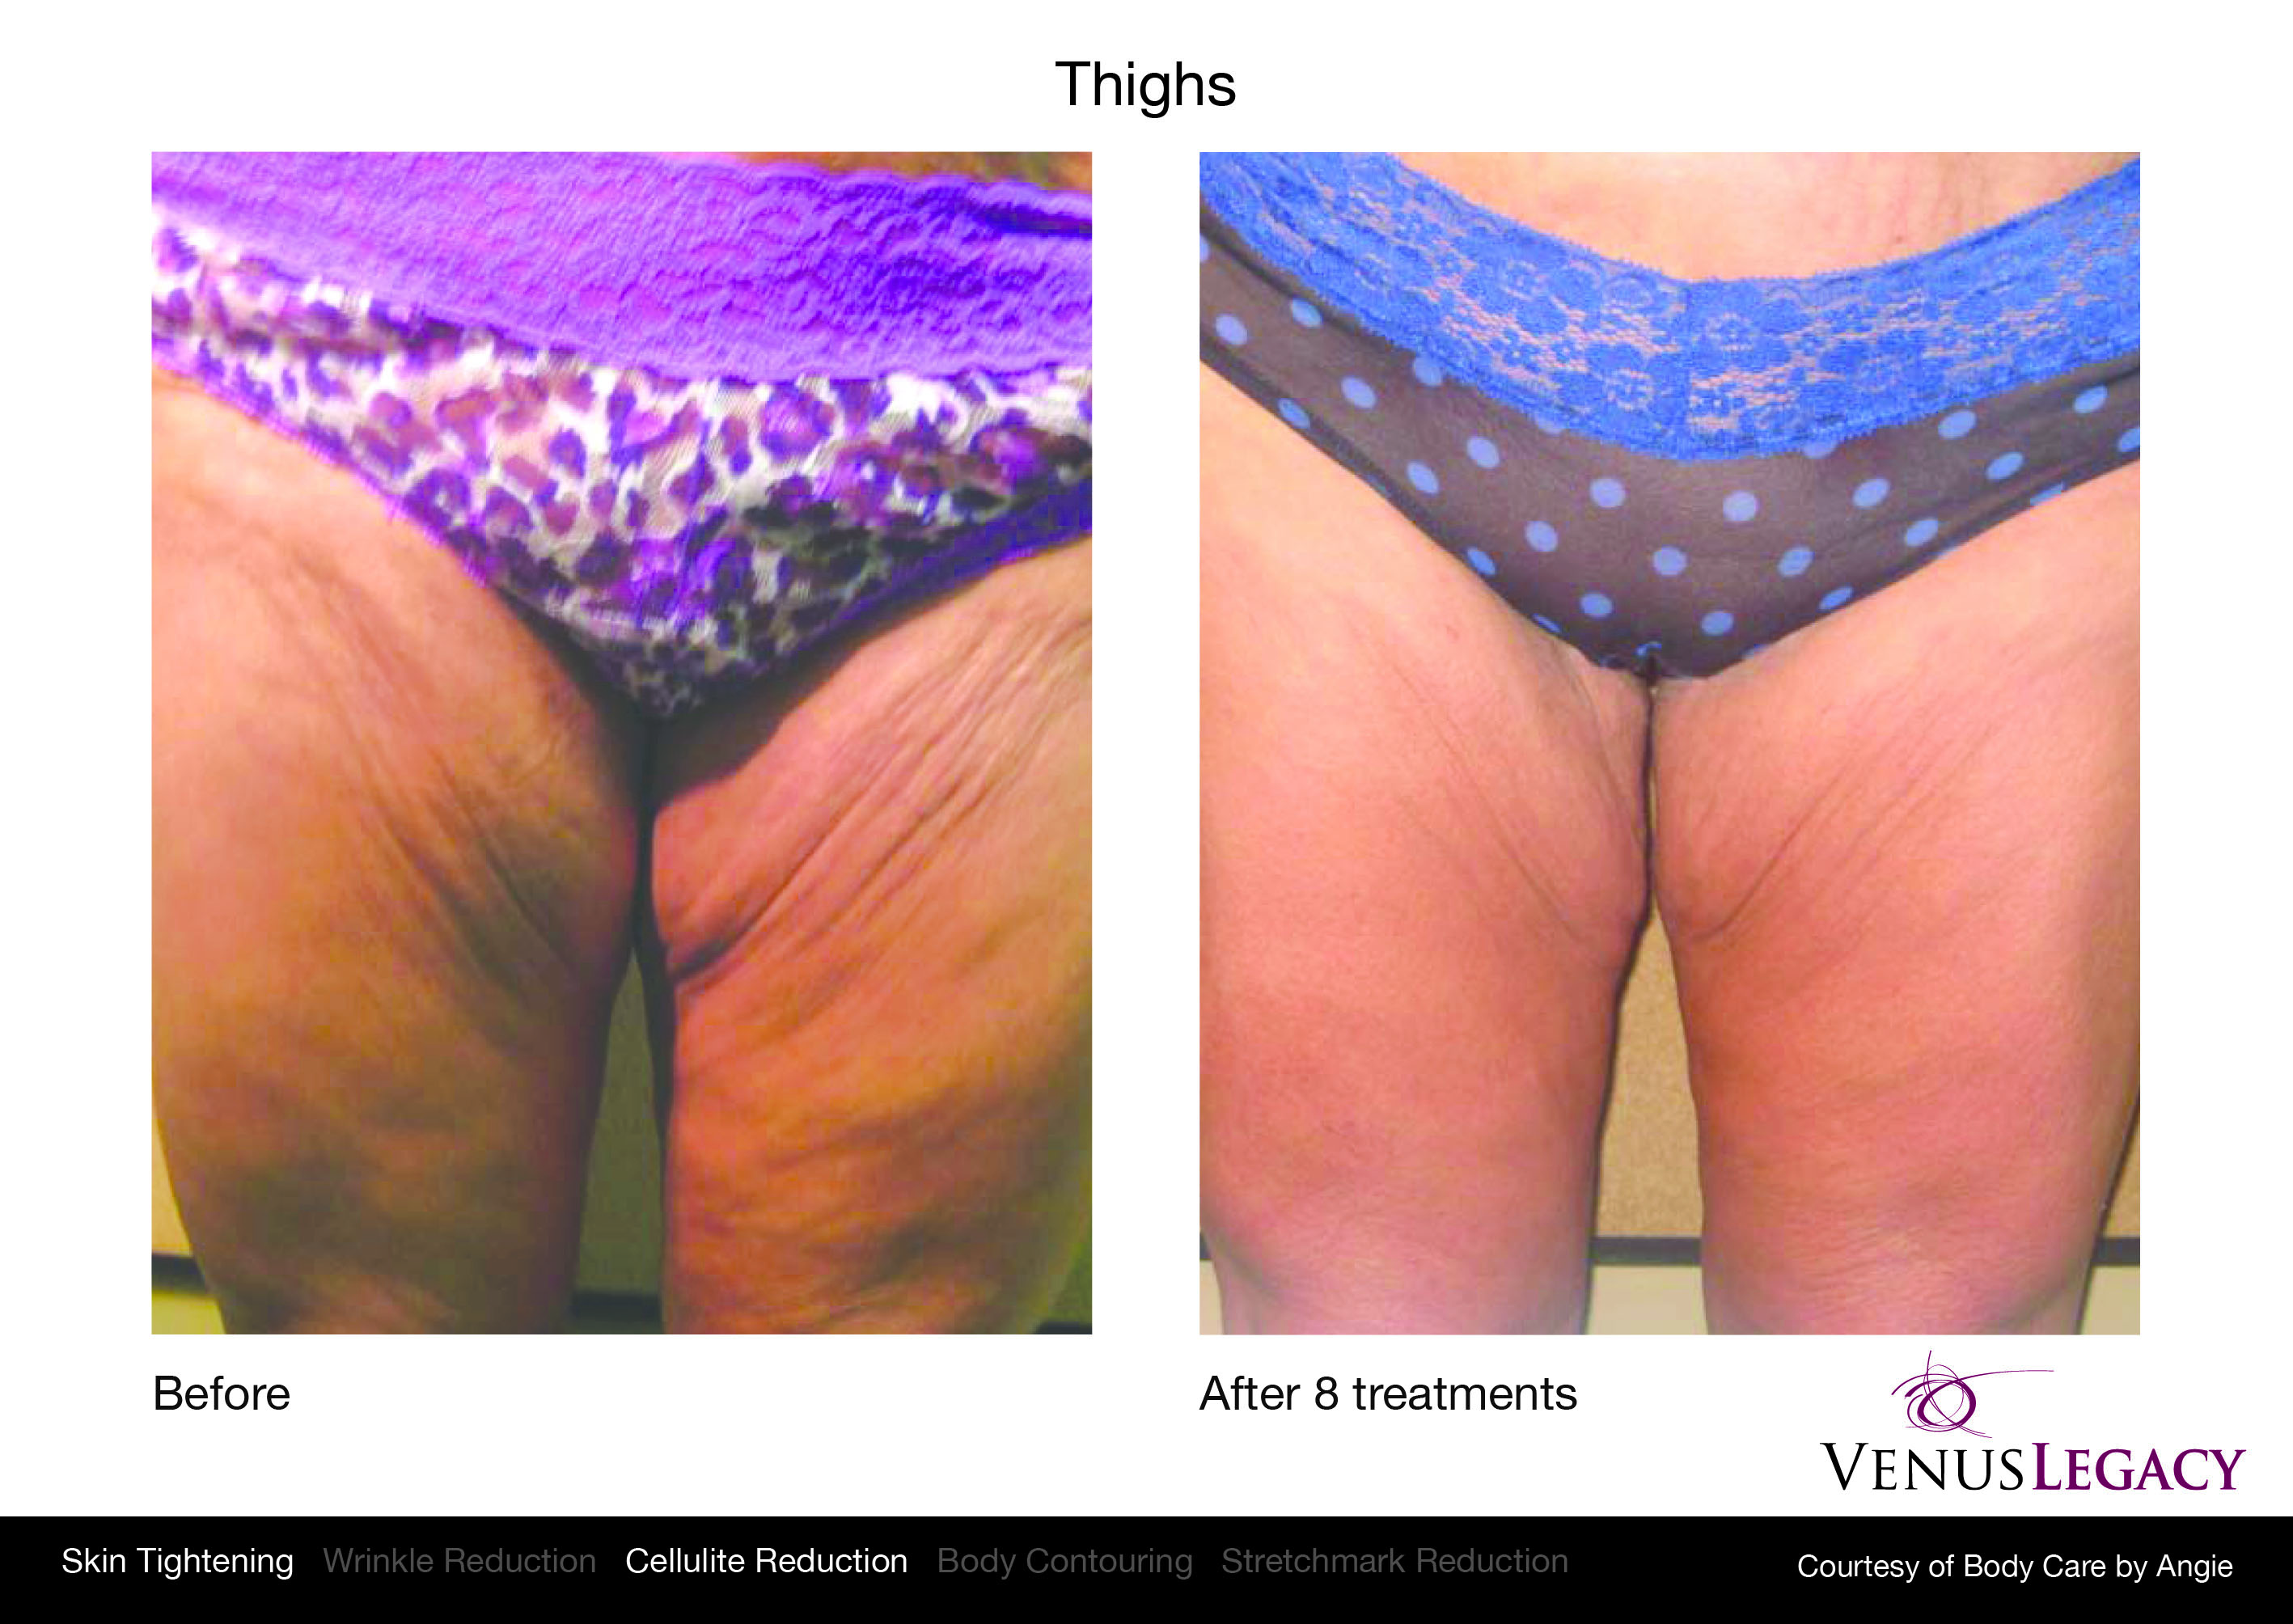 Cellulite Reduction in Edmonton